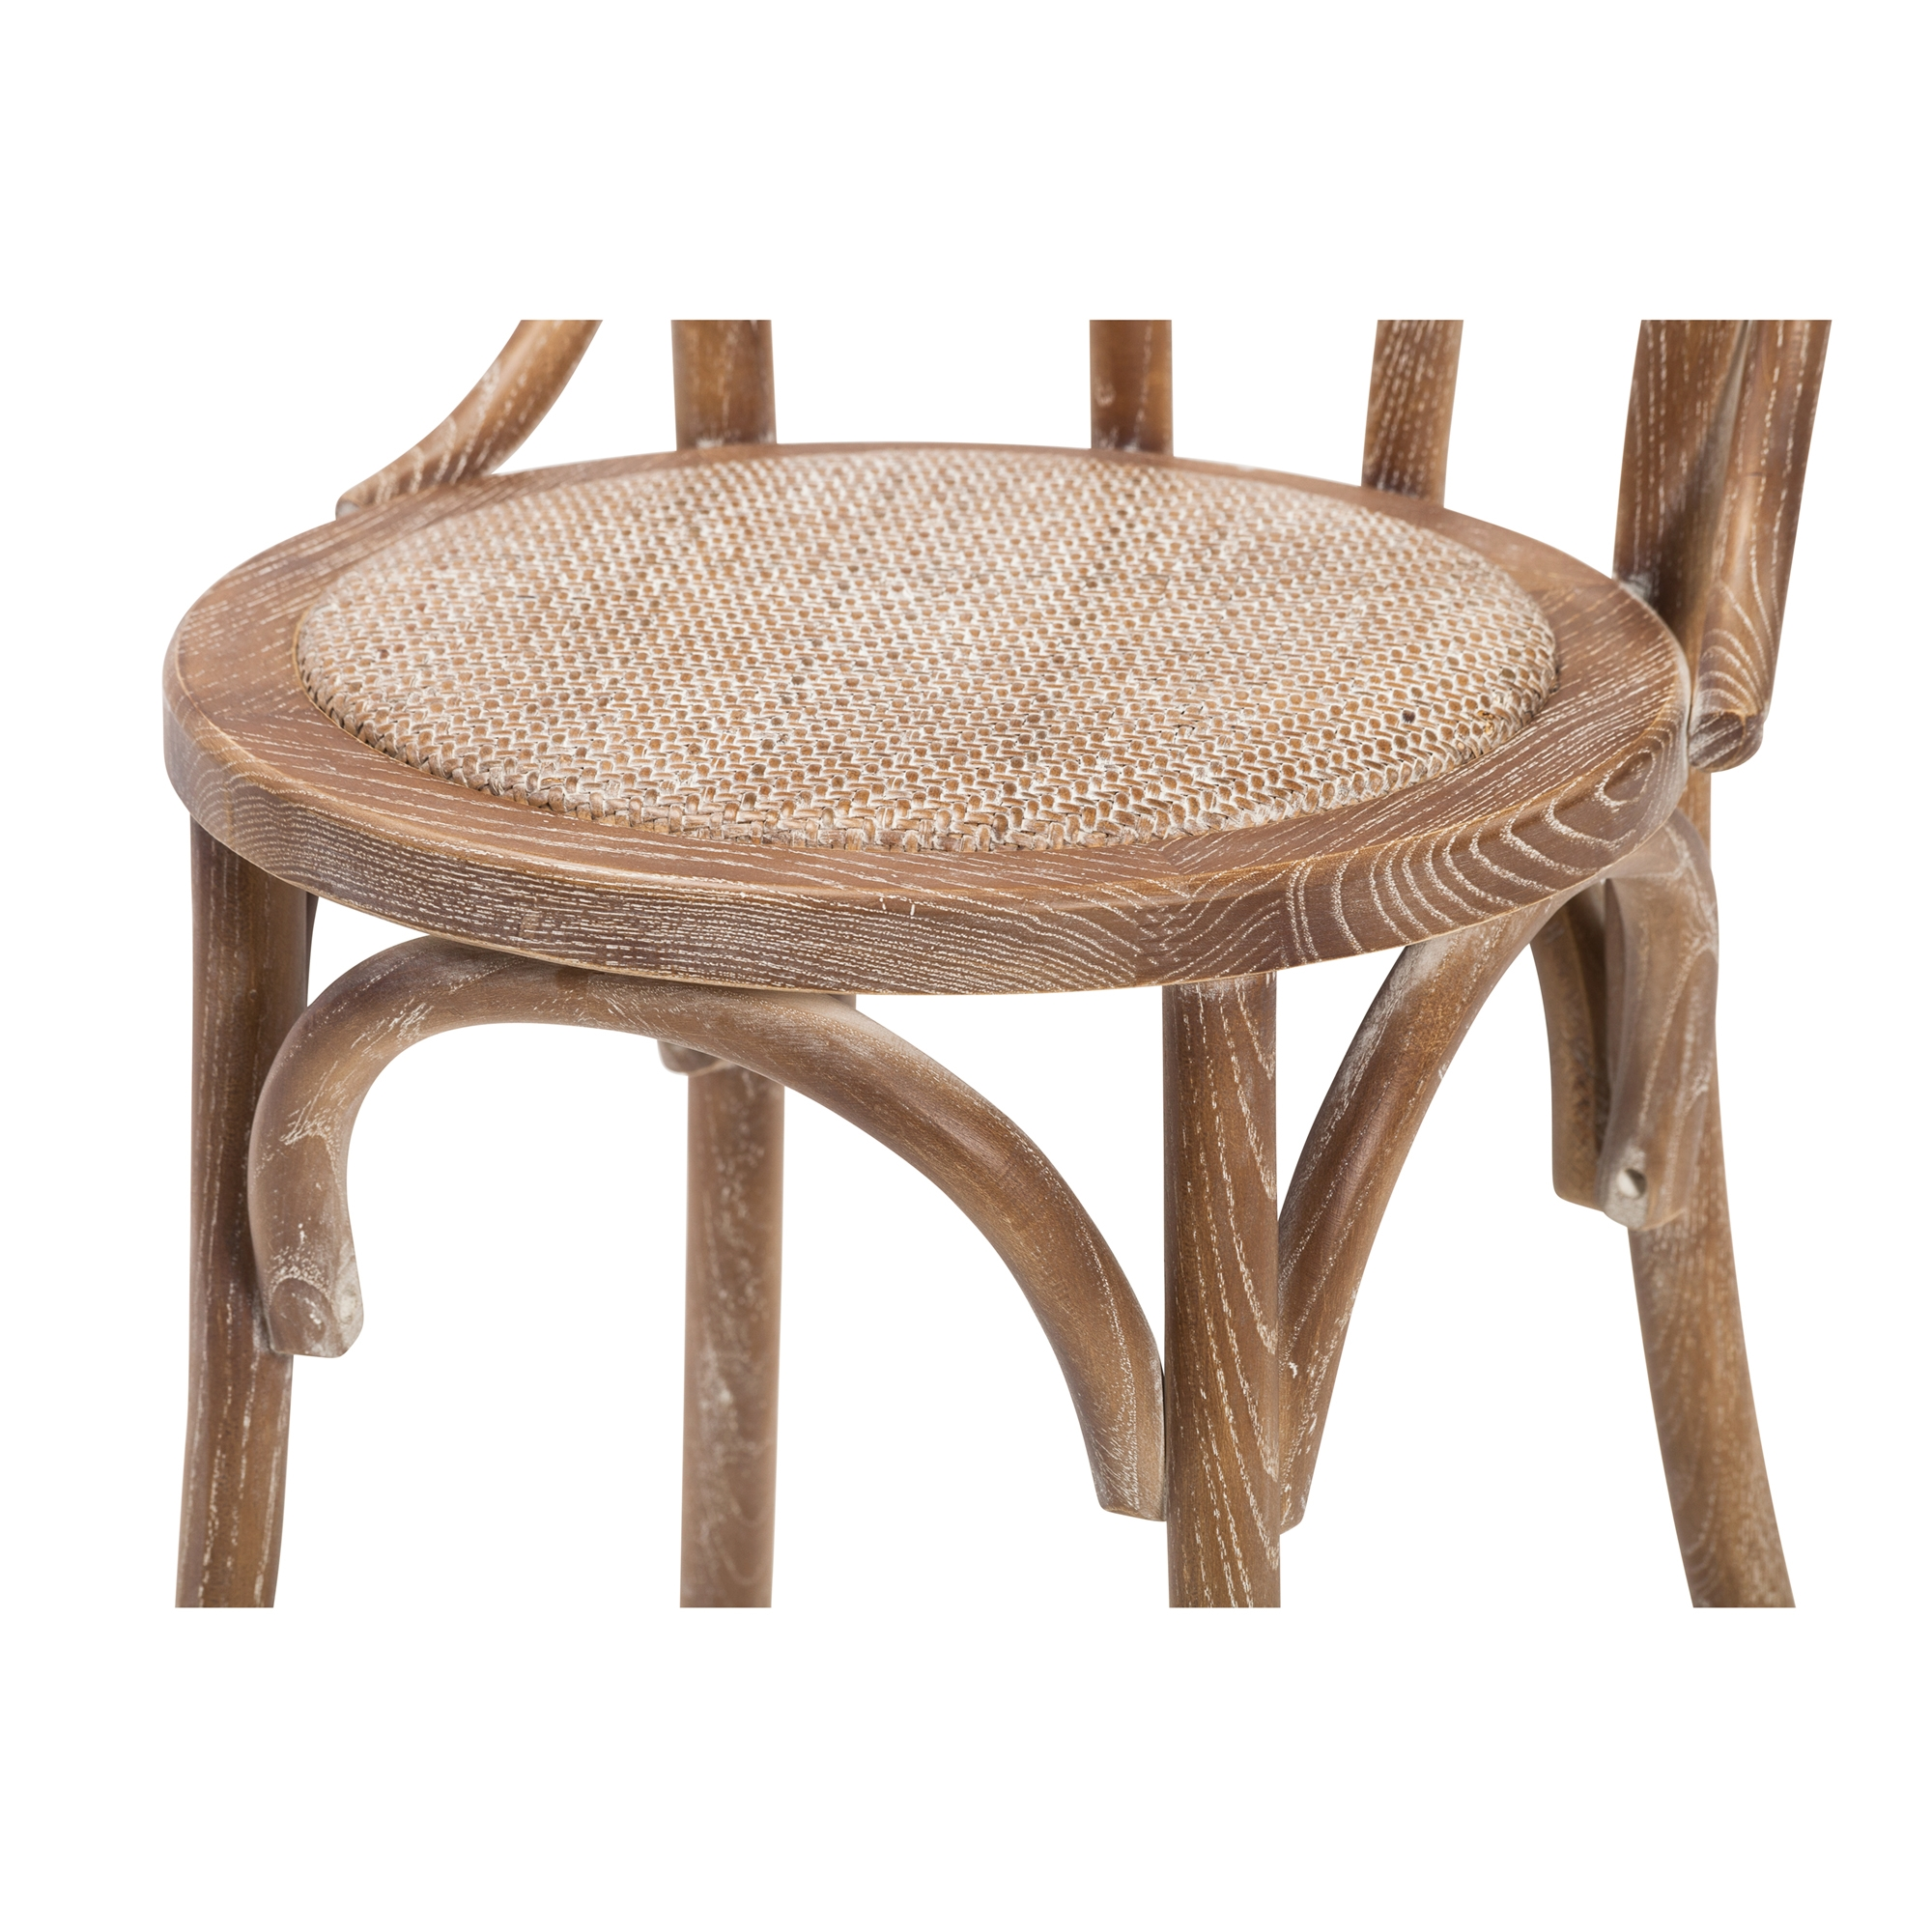 Wondrous No 18 Bentwood Cafe Chair Distressed Gmtry Best Dining Table And Chair Ideas Images Gmtryco